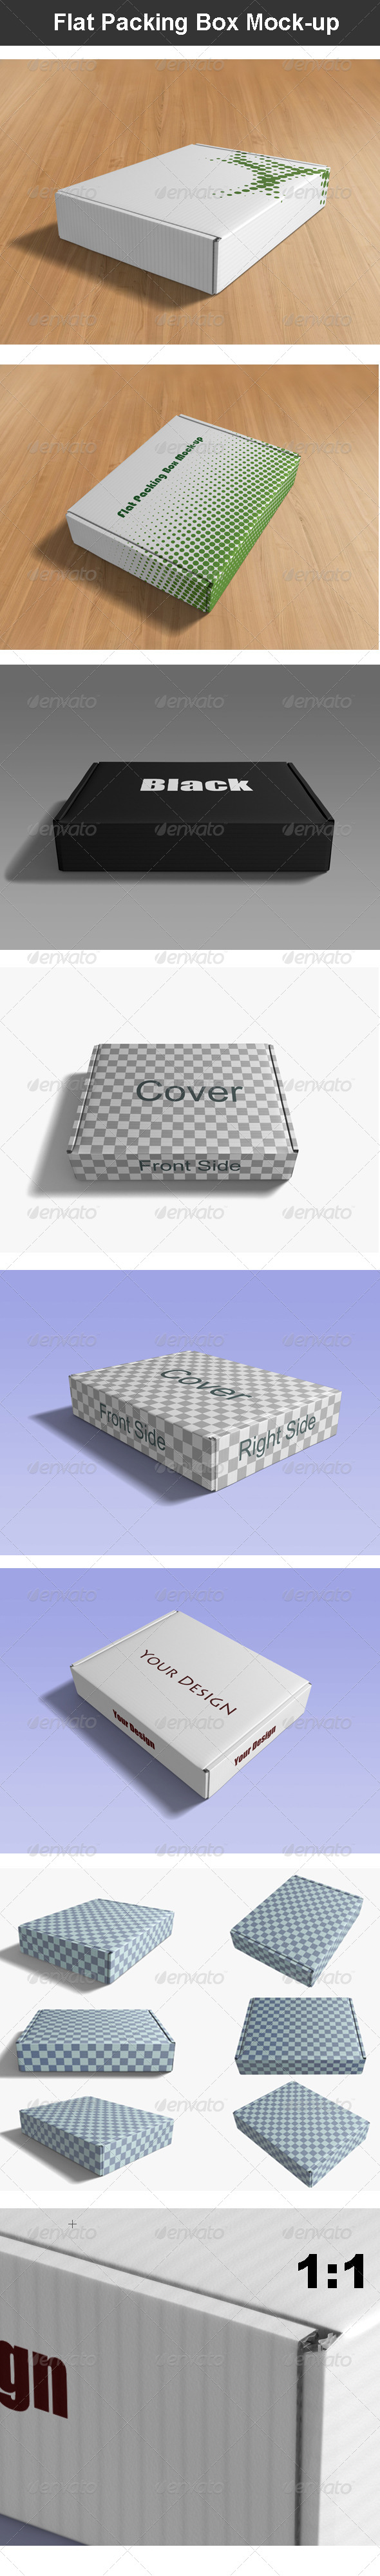 Flat Packing Box Mock-up - Graphics